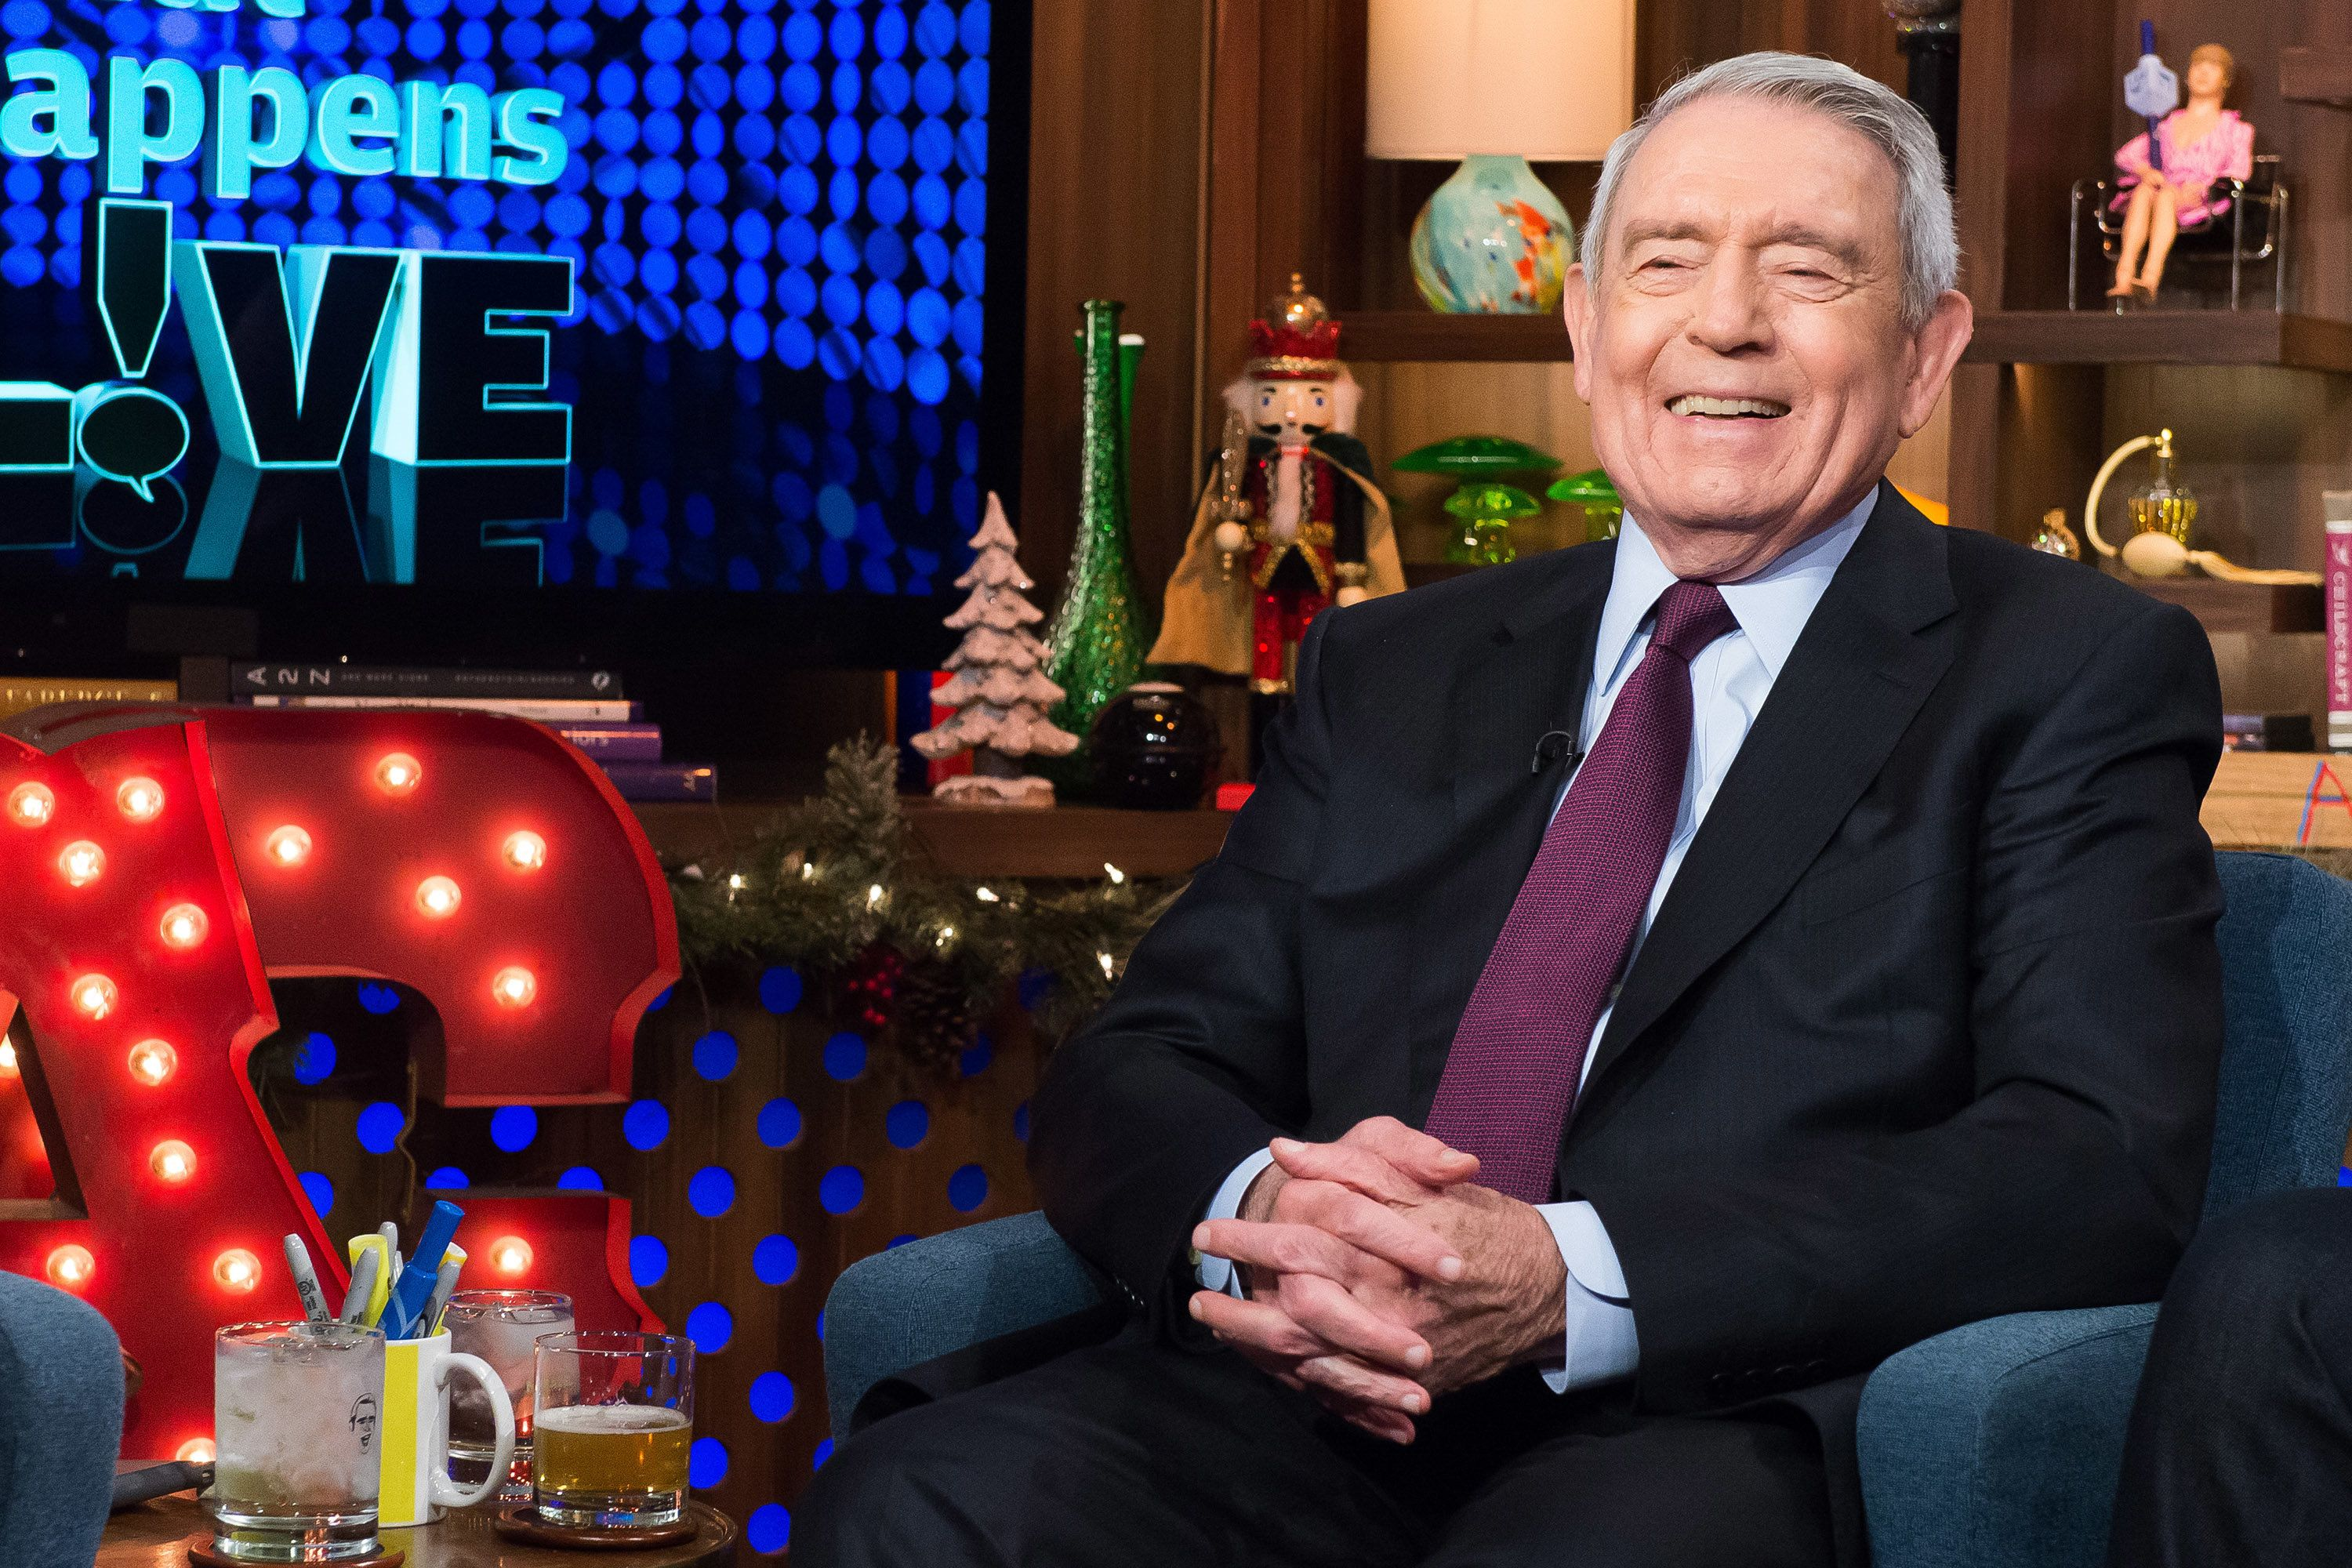 WATCH WHAT HAPPENS LIVE -- Pictured: Dan Rather -- (Photo by: Charles Sykes/Bravo/NBCU Photo Bank via Getty Images)